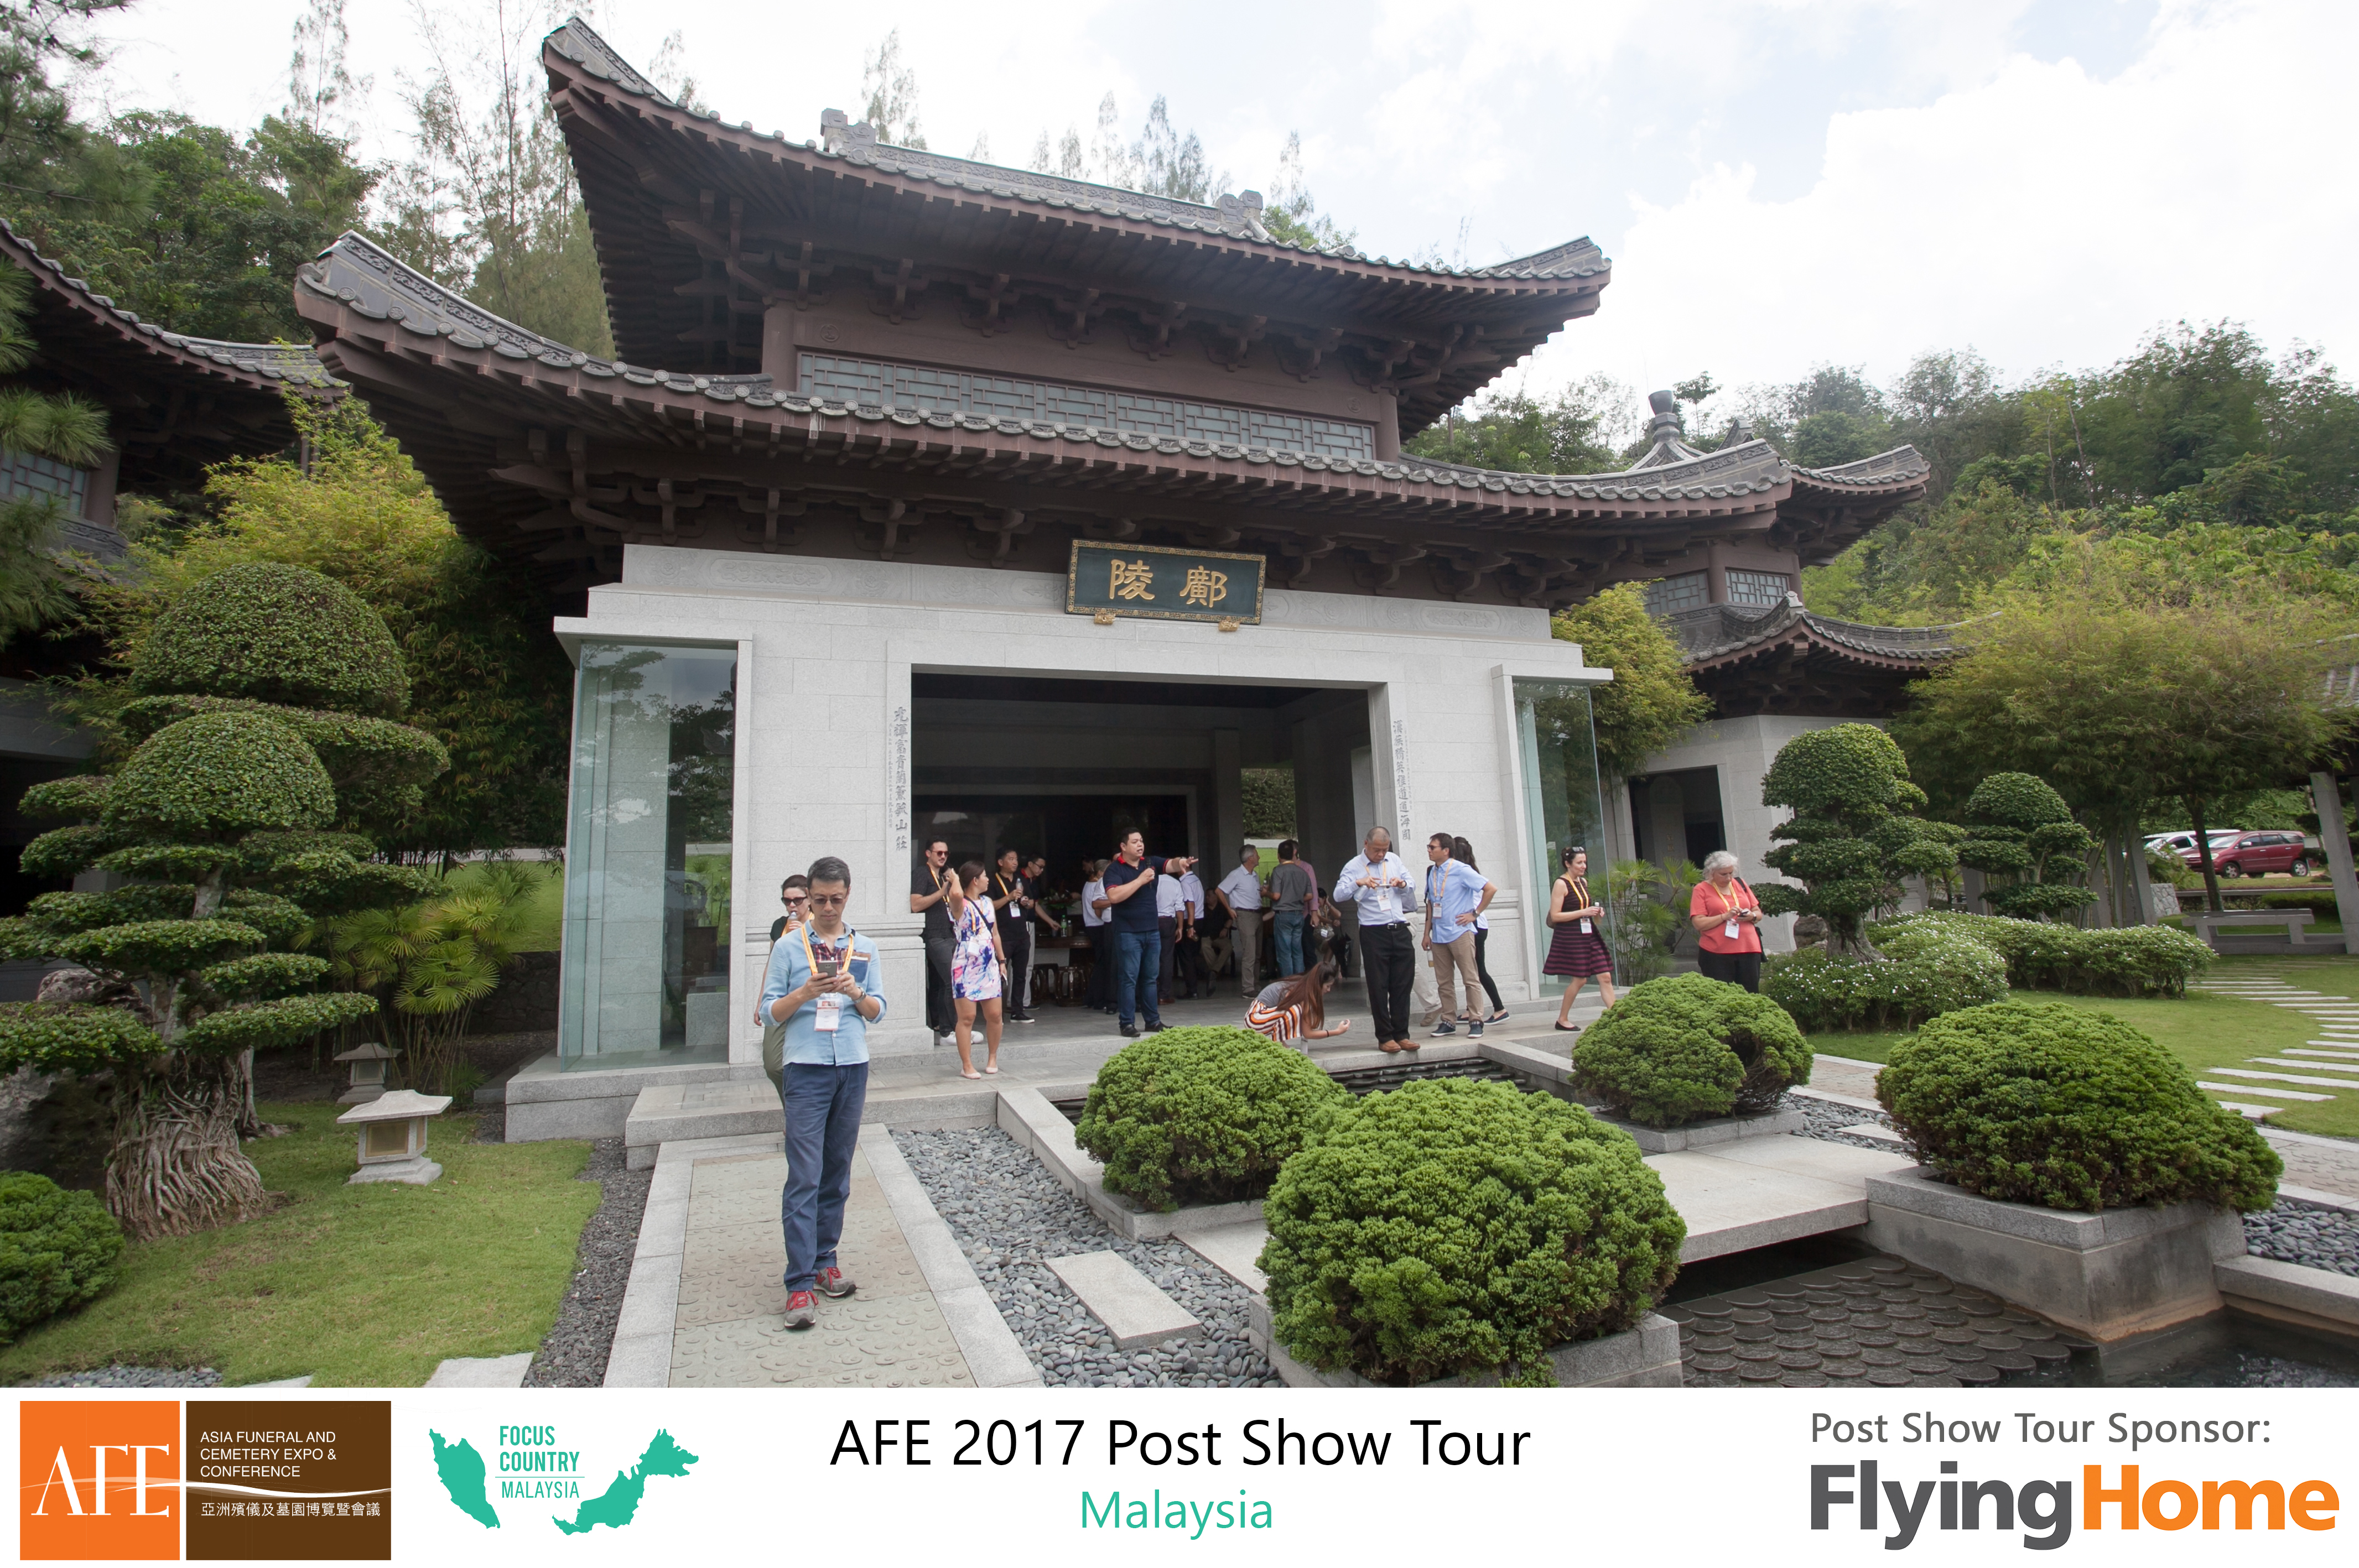 AFE Post Show Tour 2017 Day 2 - 12